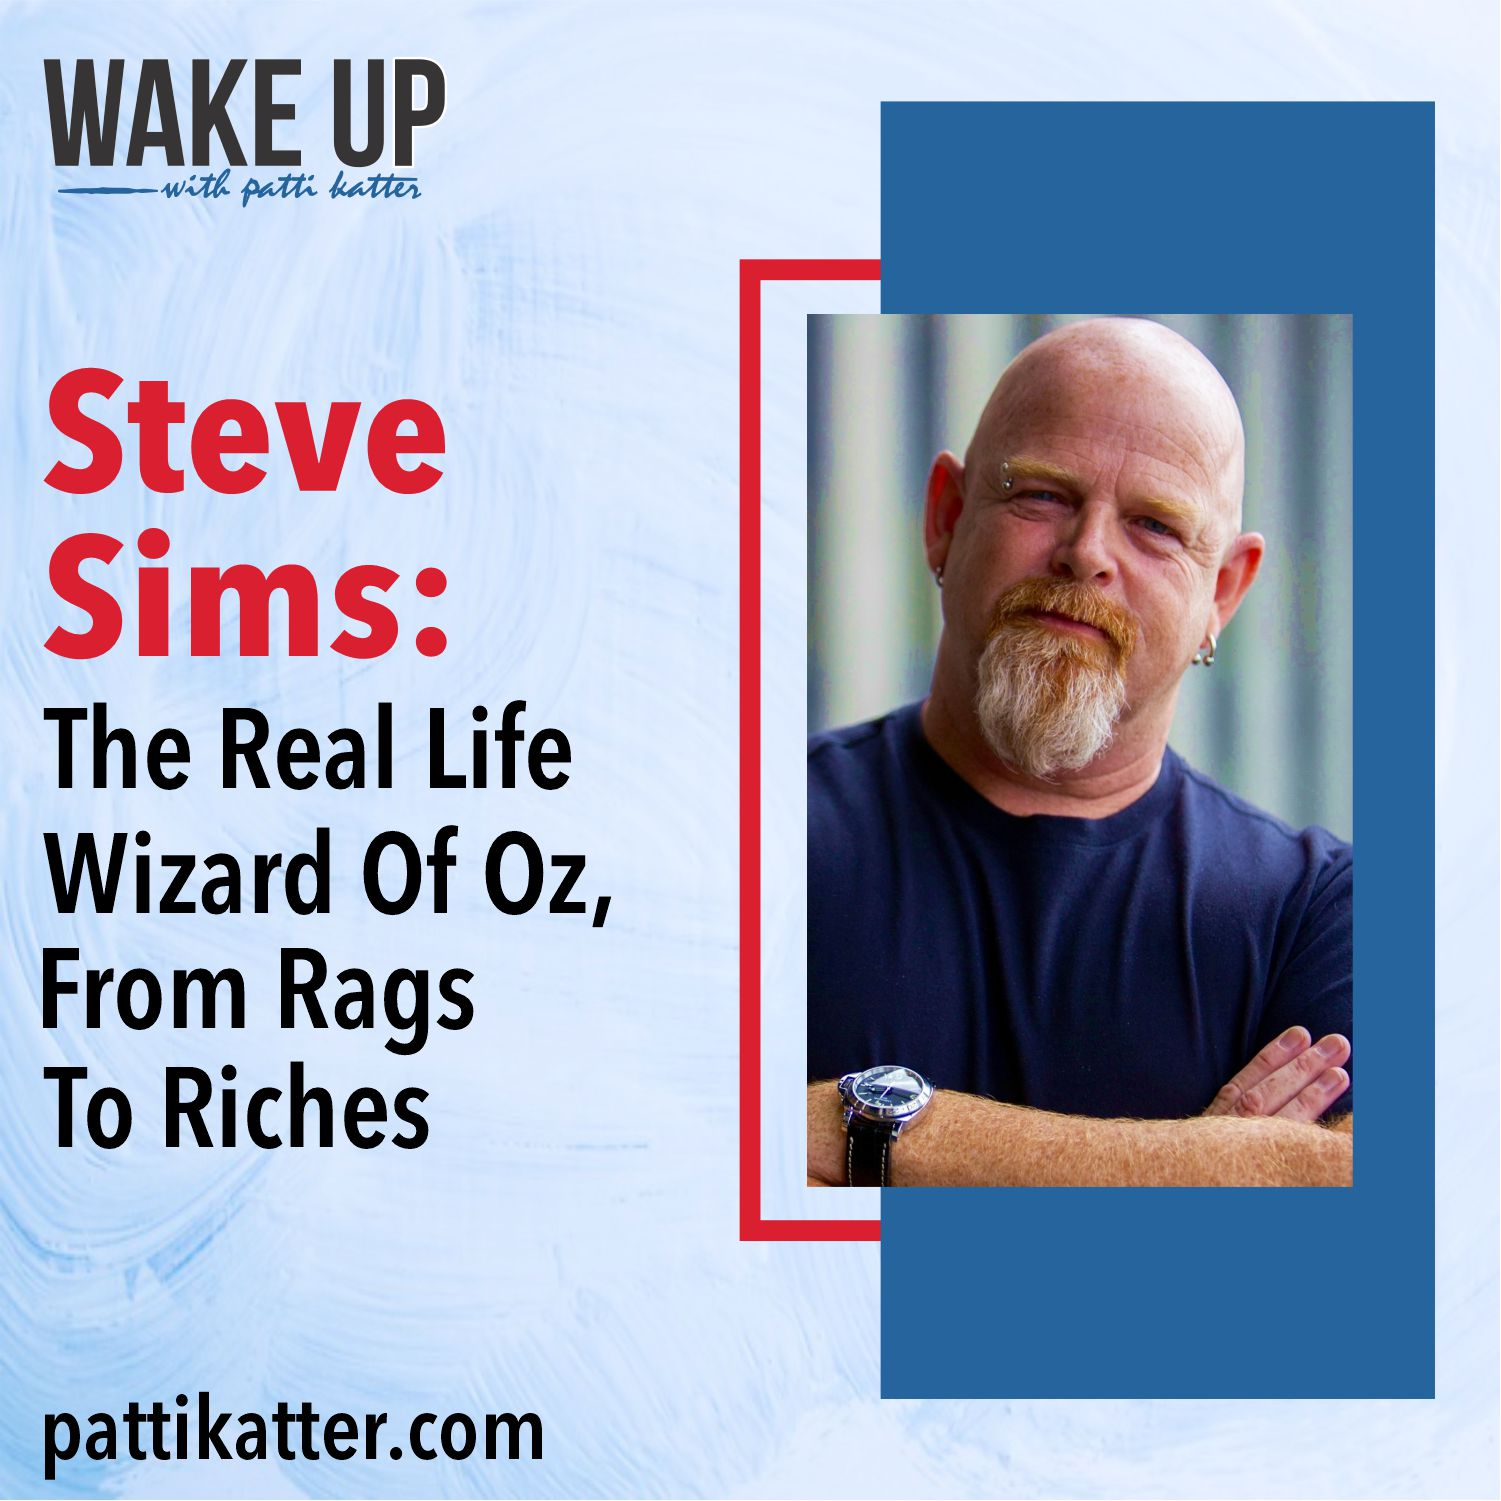 Steve Sims: The Real Life Wizard Of Oz, From Rags To Riches